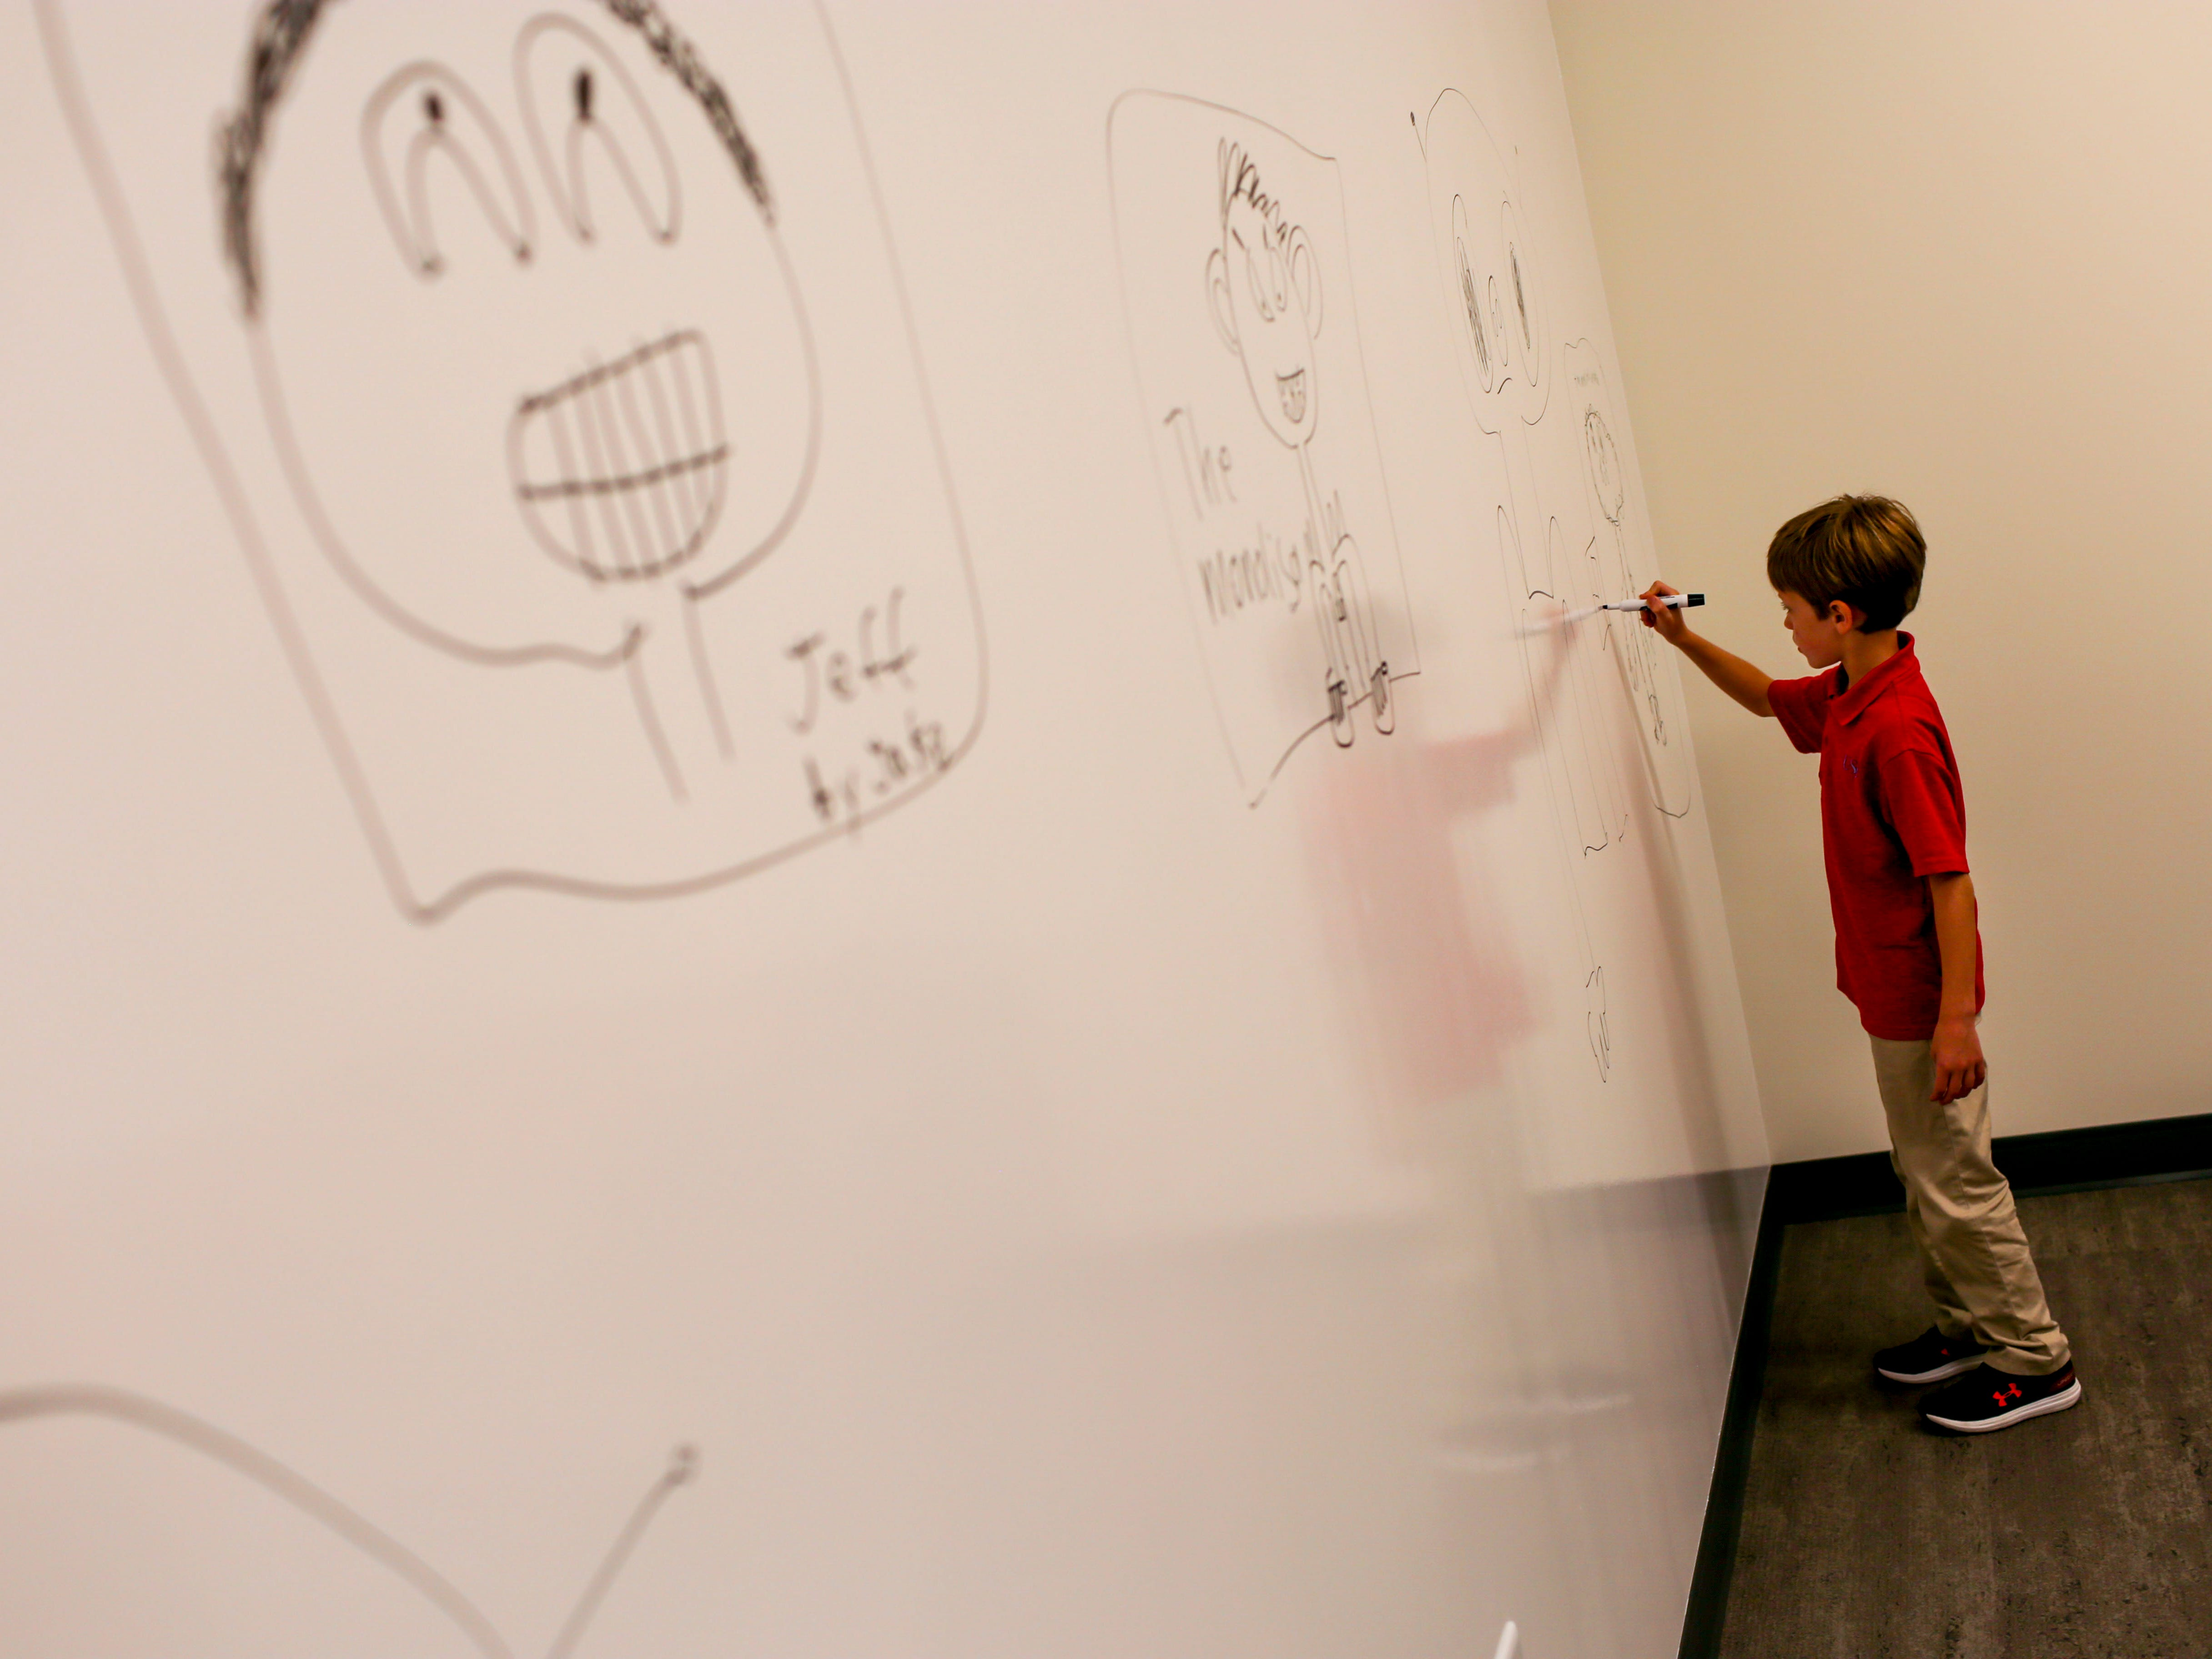 Landon McCord, 8, adds details to his drawing of an alien one a wall at University School of Jackson in Jackson, Tenn., on Monday, Aug. 20, 2018.